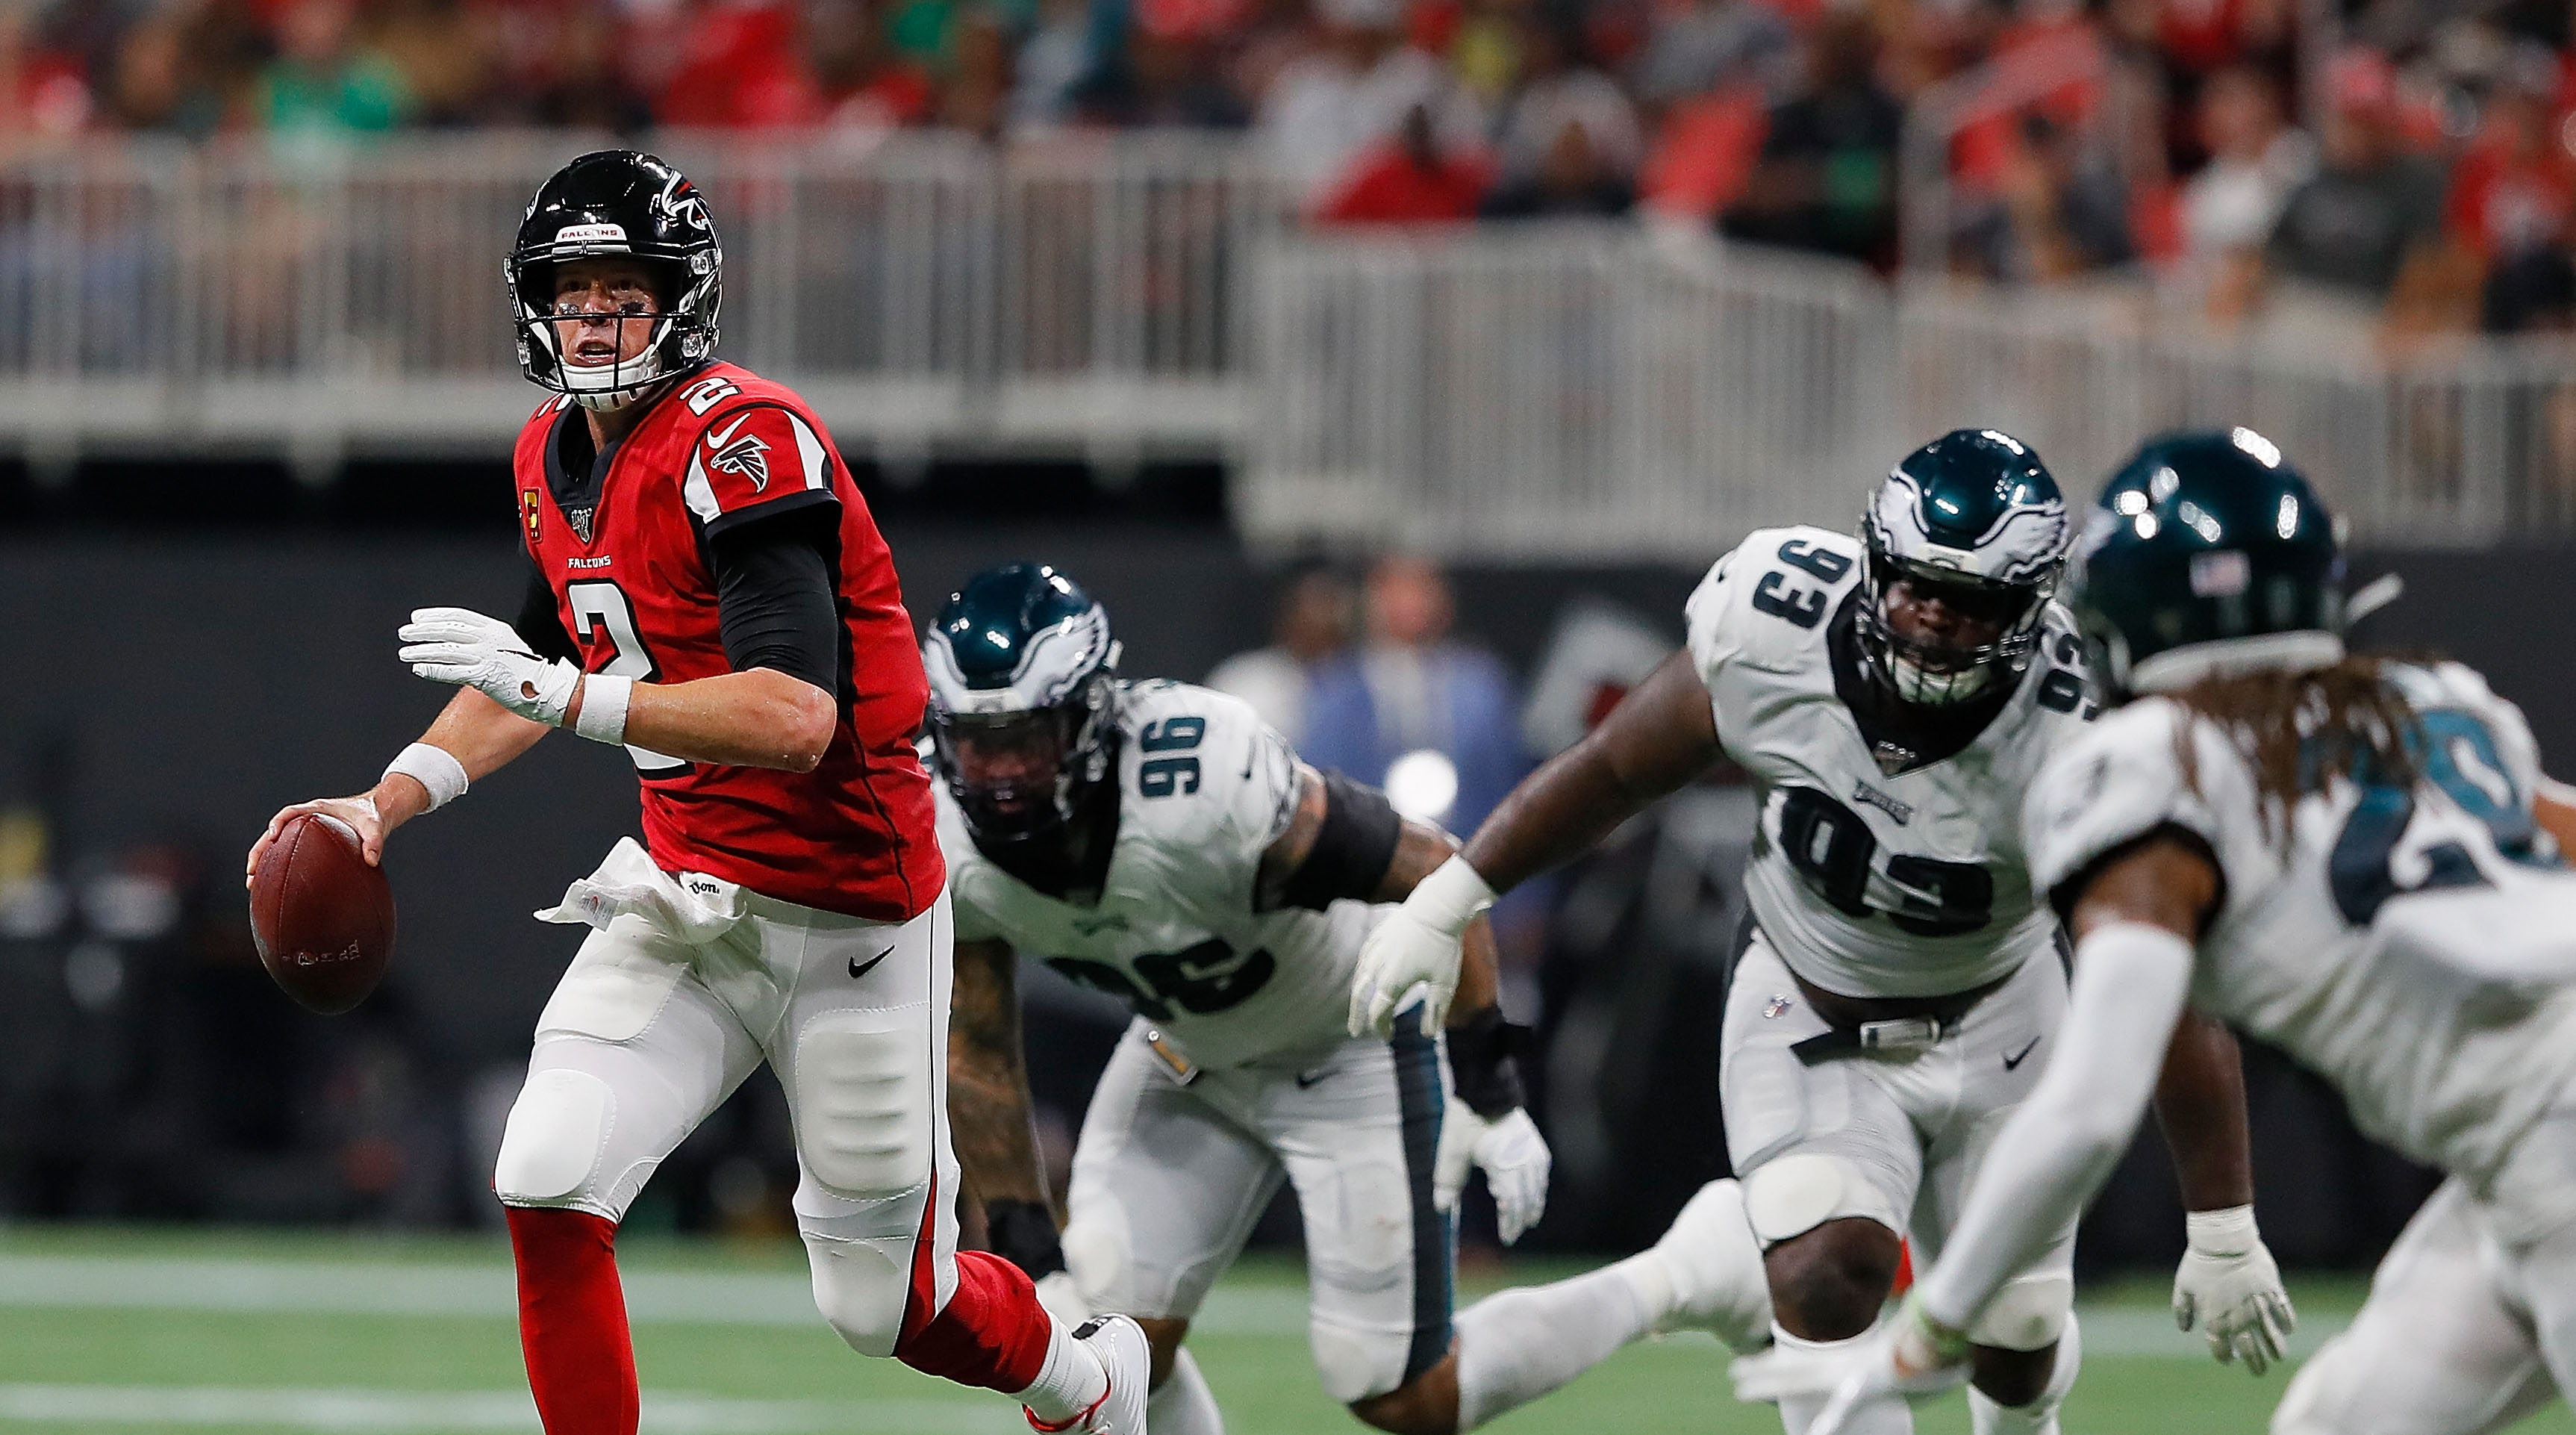 falcons-gain-early-season-momentum-with-wild-win-over-eagles